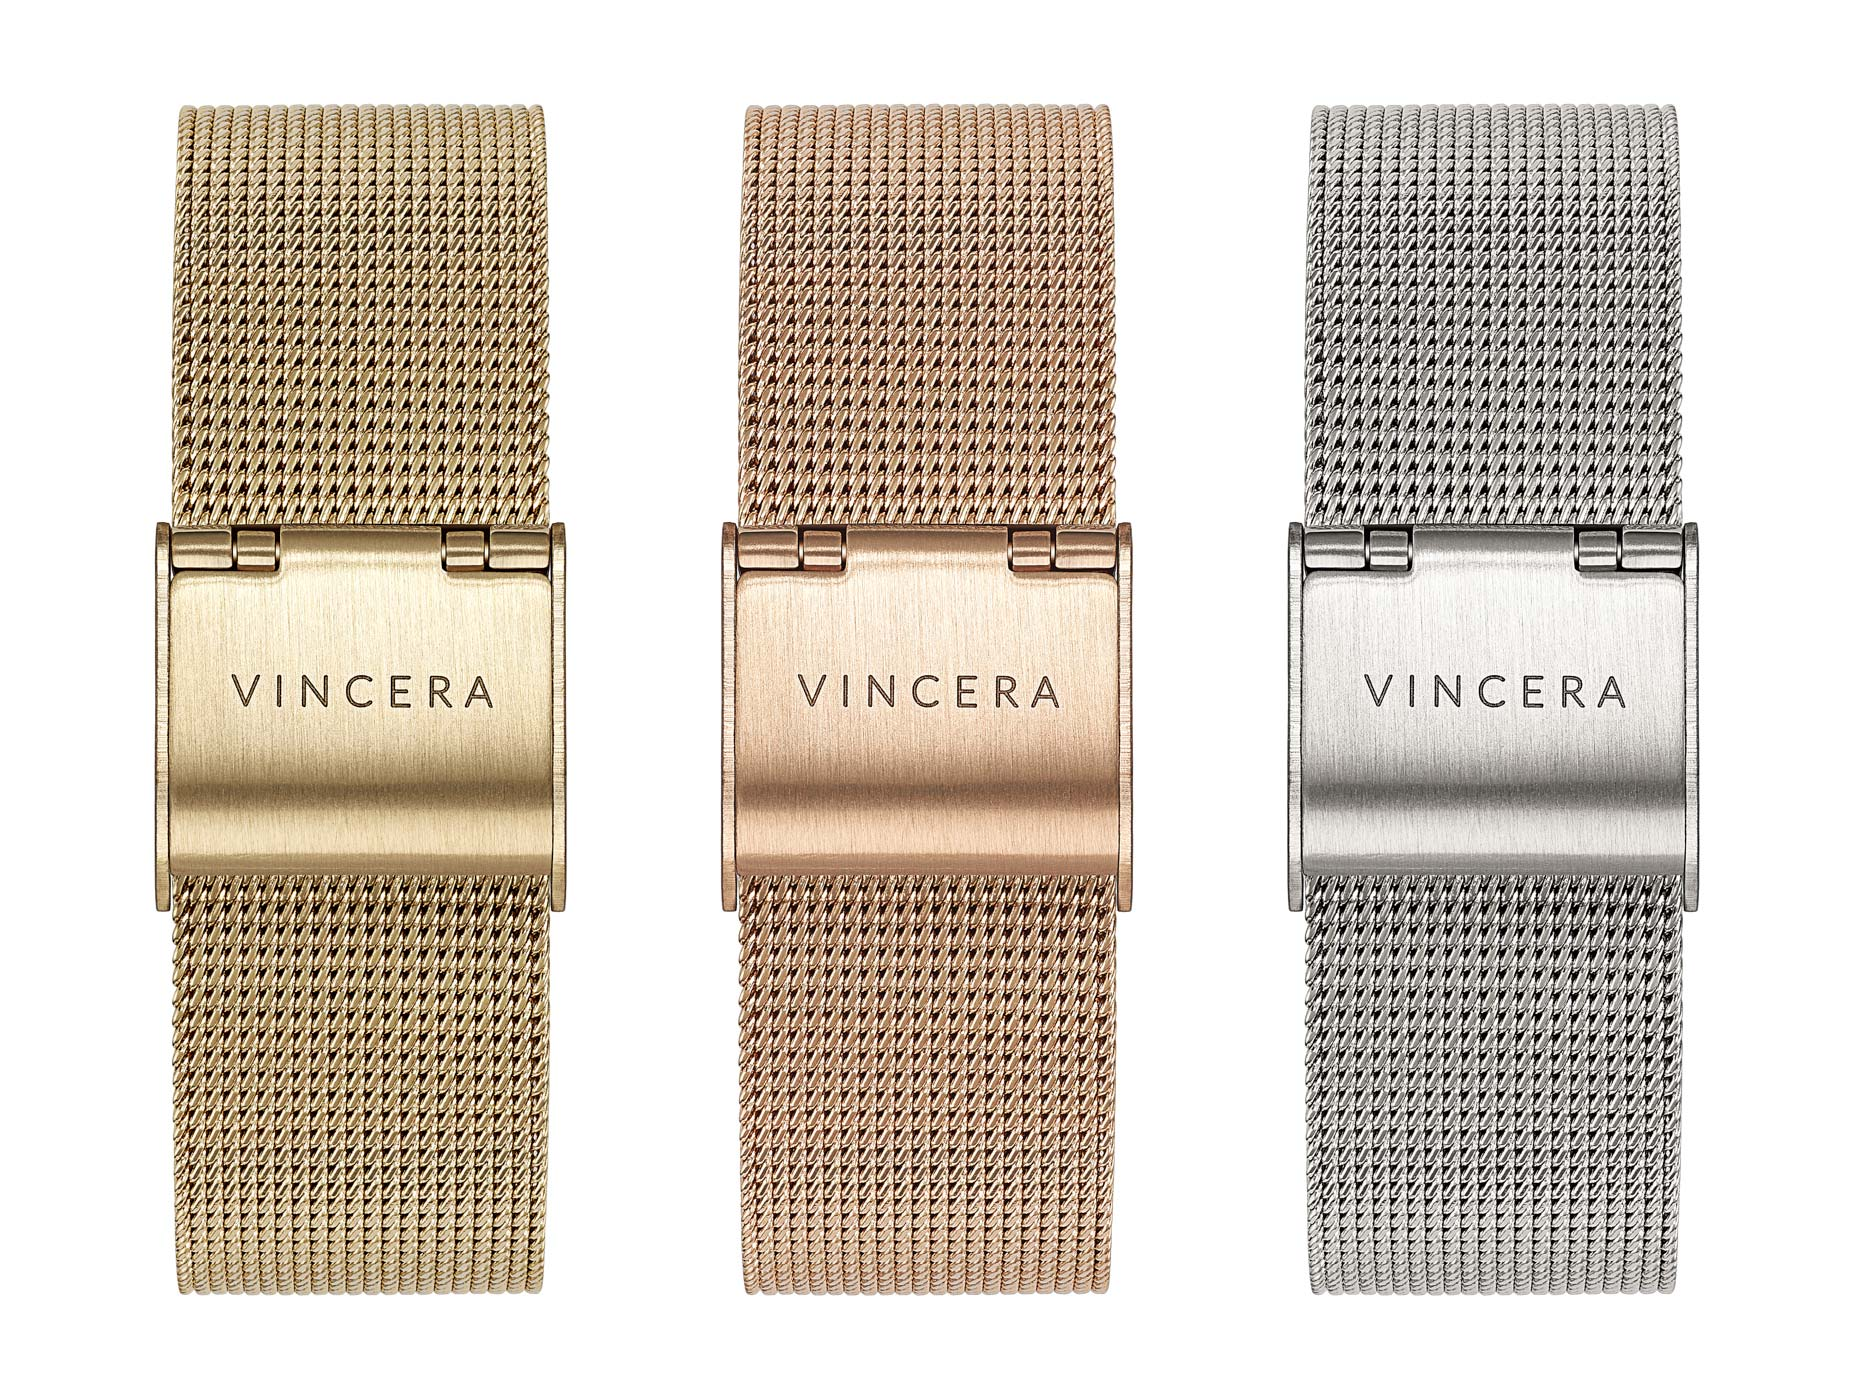 Vincera Collective Watch Mesh Bands - Christophe Benard Photography - Edmonton Commercial Photographer, Edmonton Commercial Photography, Edmonton Product Photographer, Edmonton Product Photography, Still Life Photographer in Canada, Product Photographer in Canada, Watch Photographer, Watch Photography